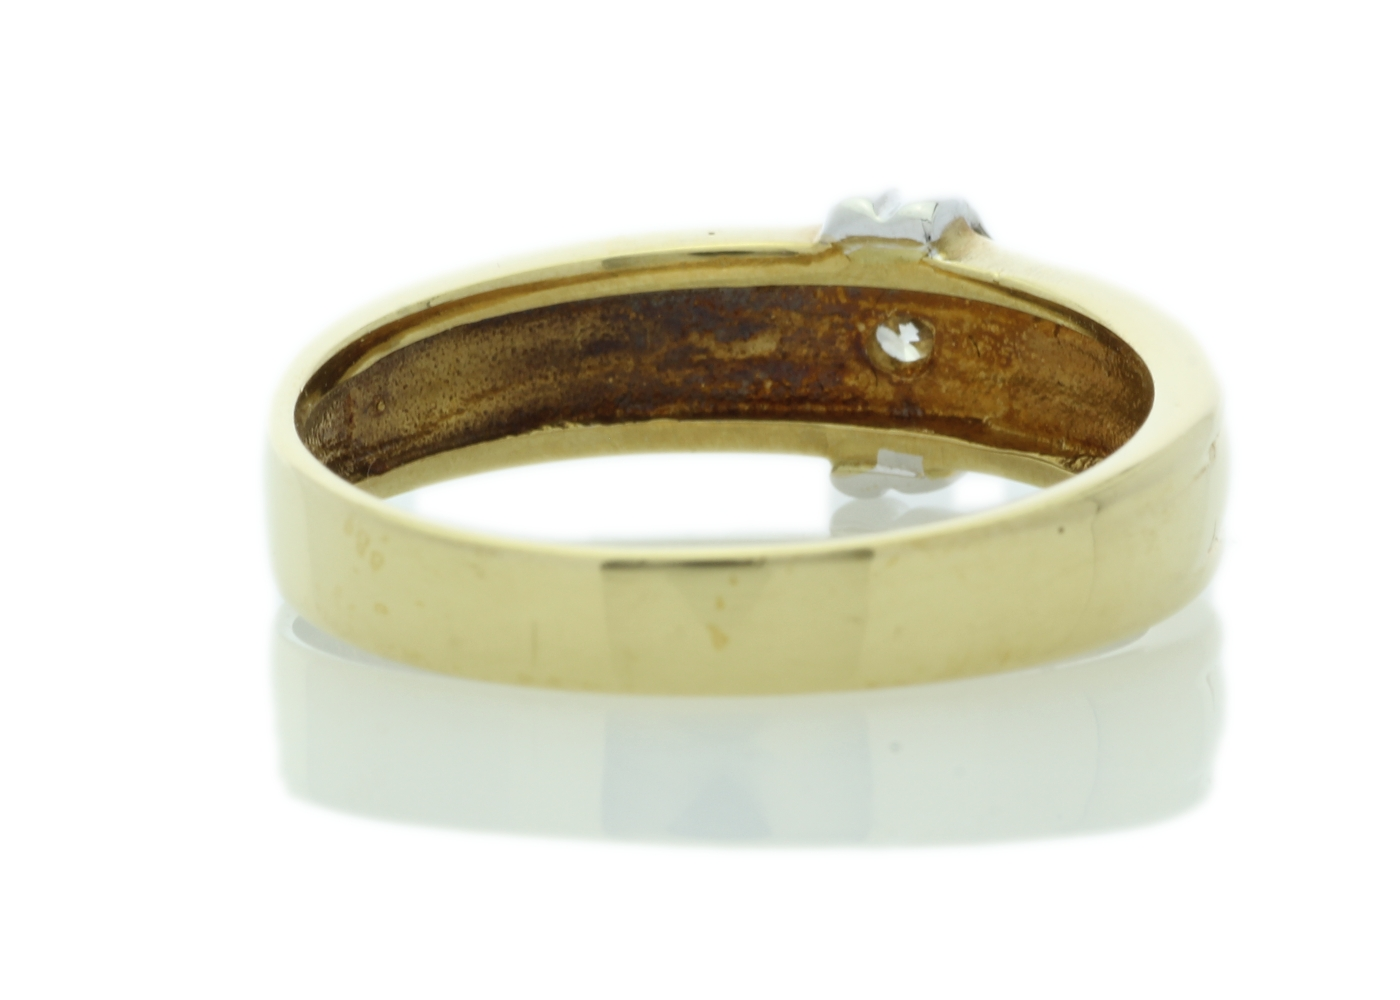 18ct Yellow Gold Rub Over Set Diamond Ring 0.21 Carats - Image 3 of 5